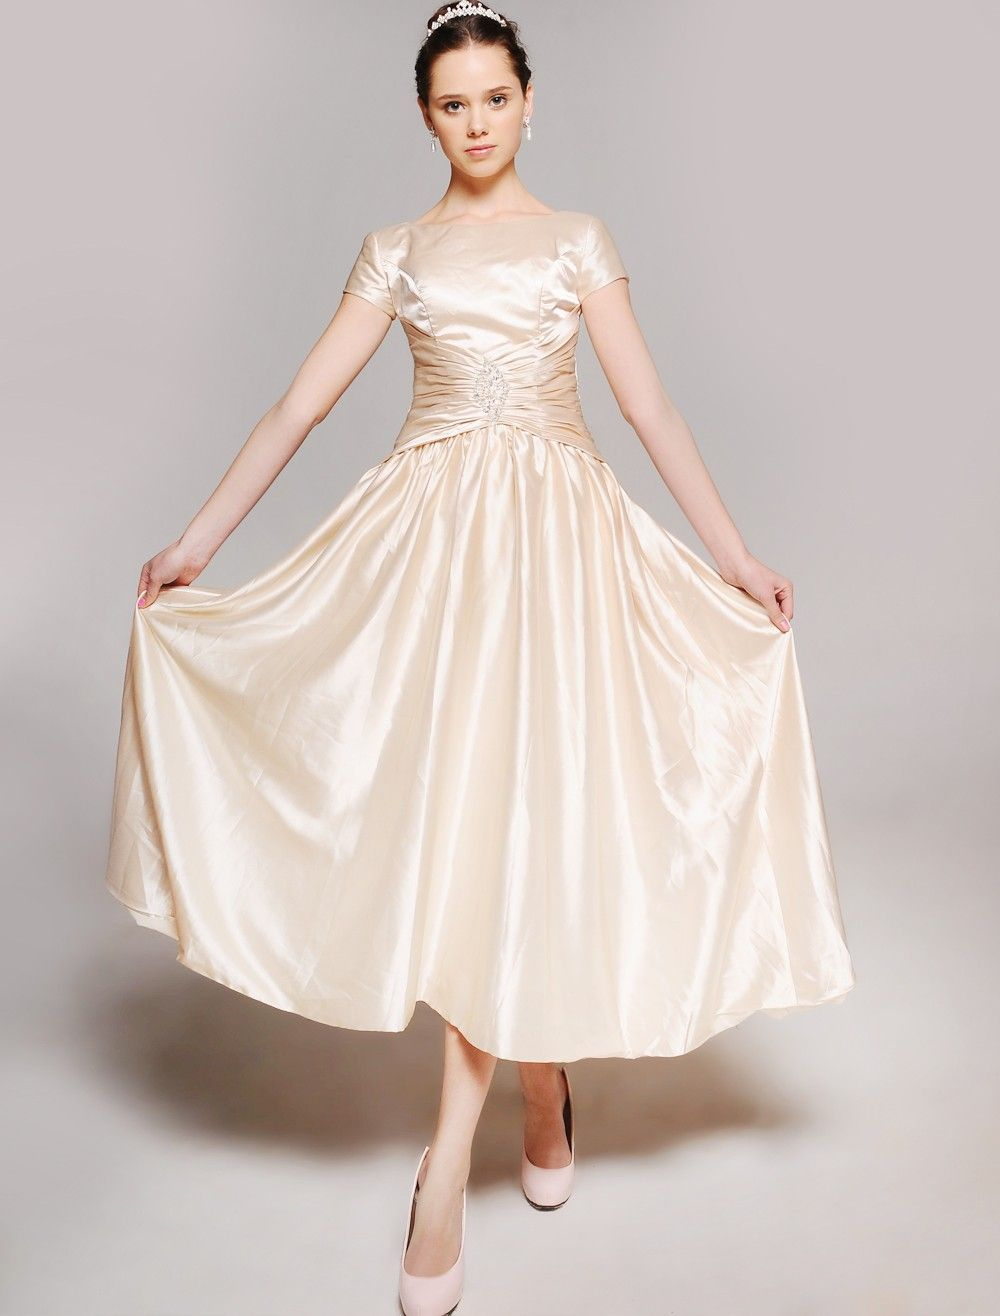 7 Dresses for the Stylish Mother of the Bride (or Groom) - The Big ...